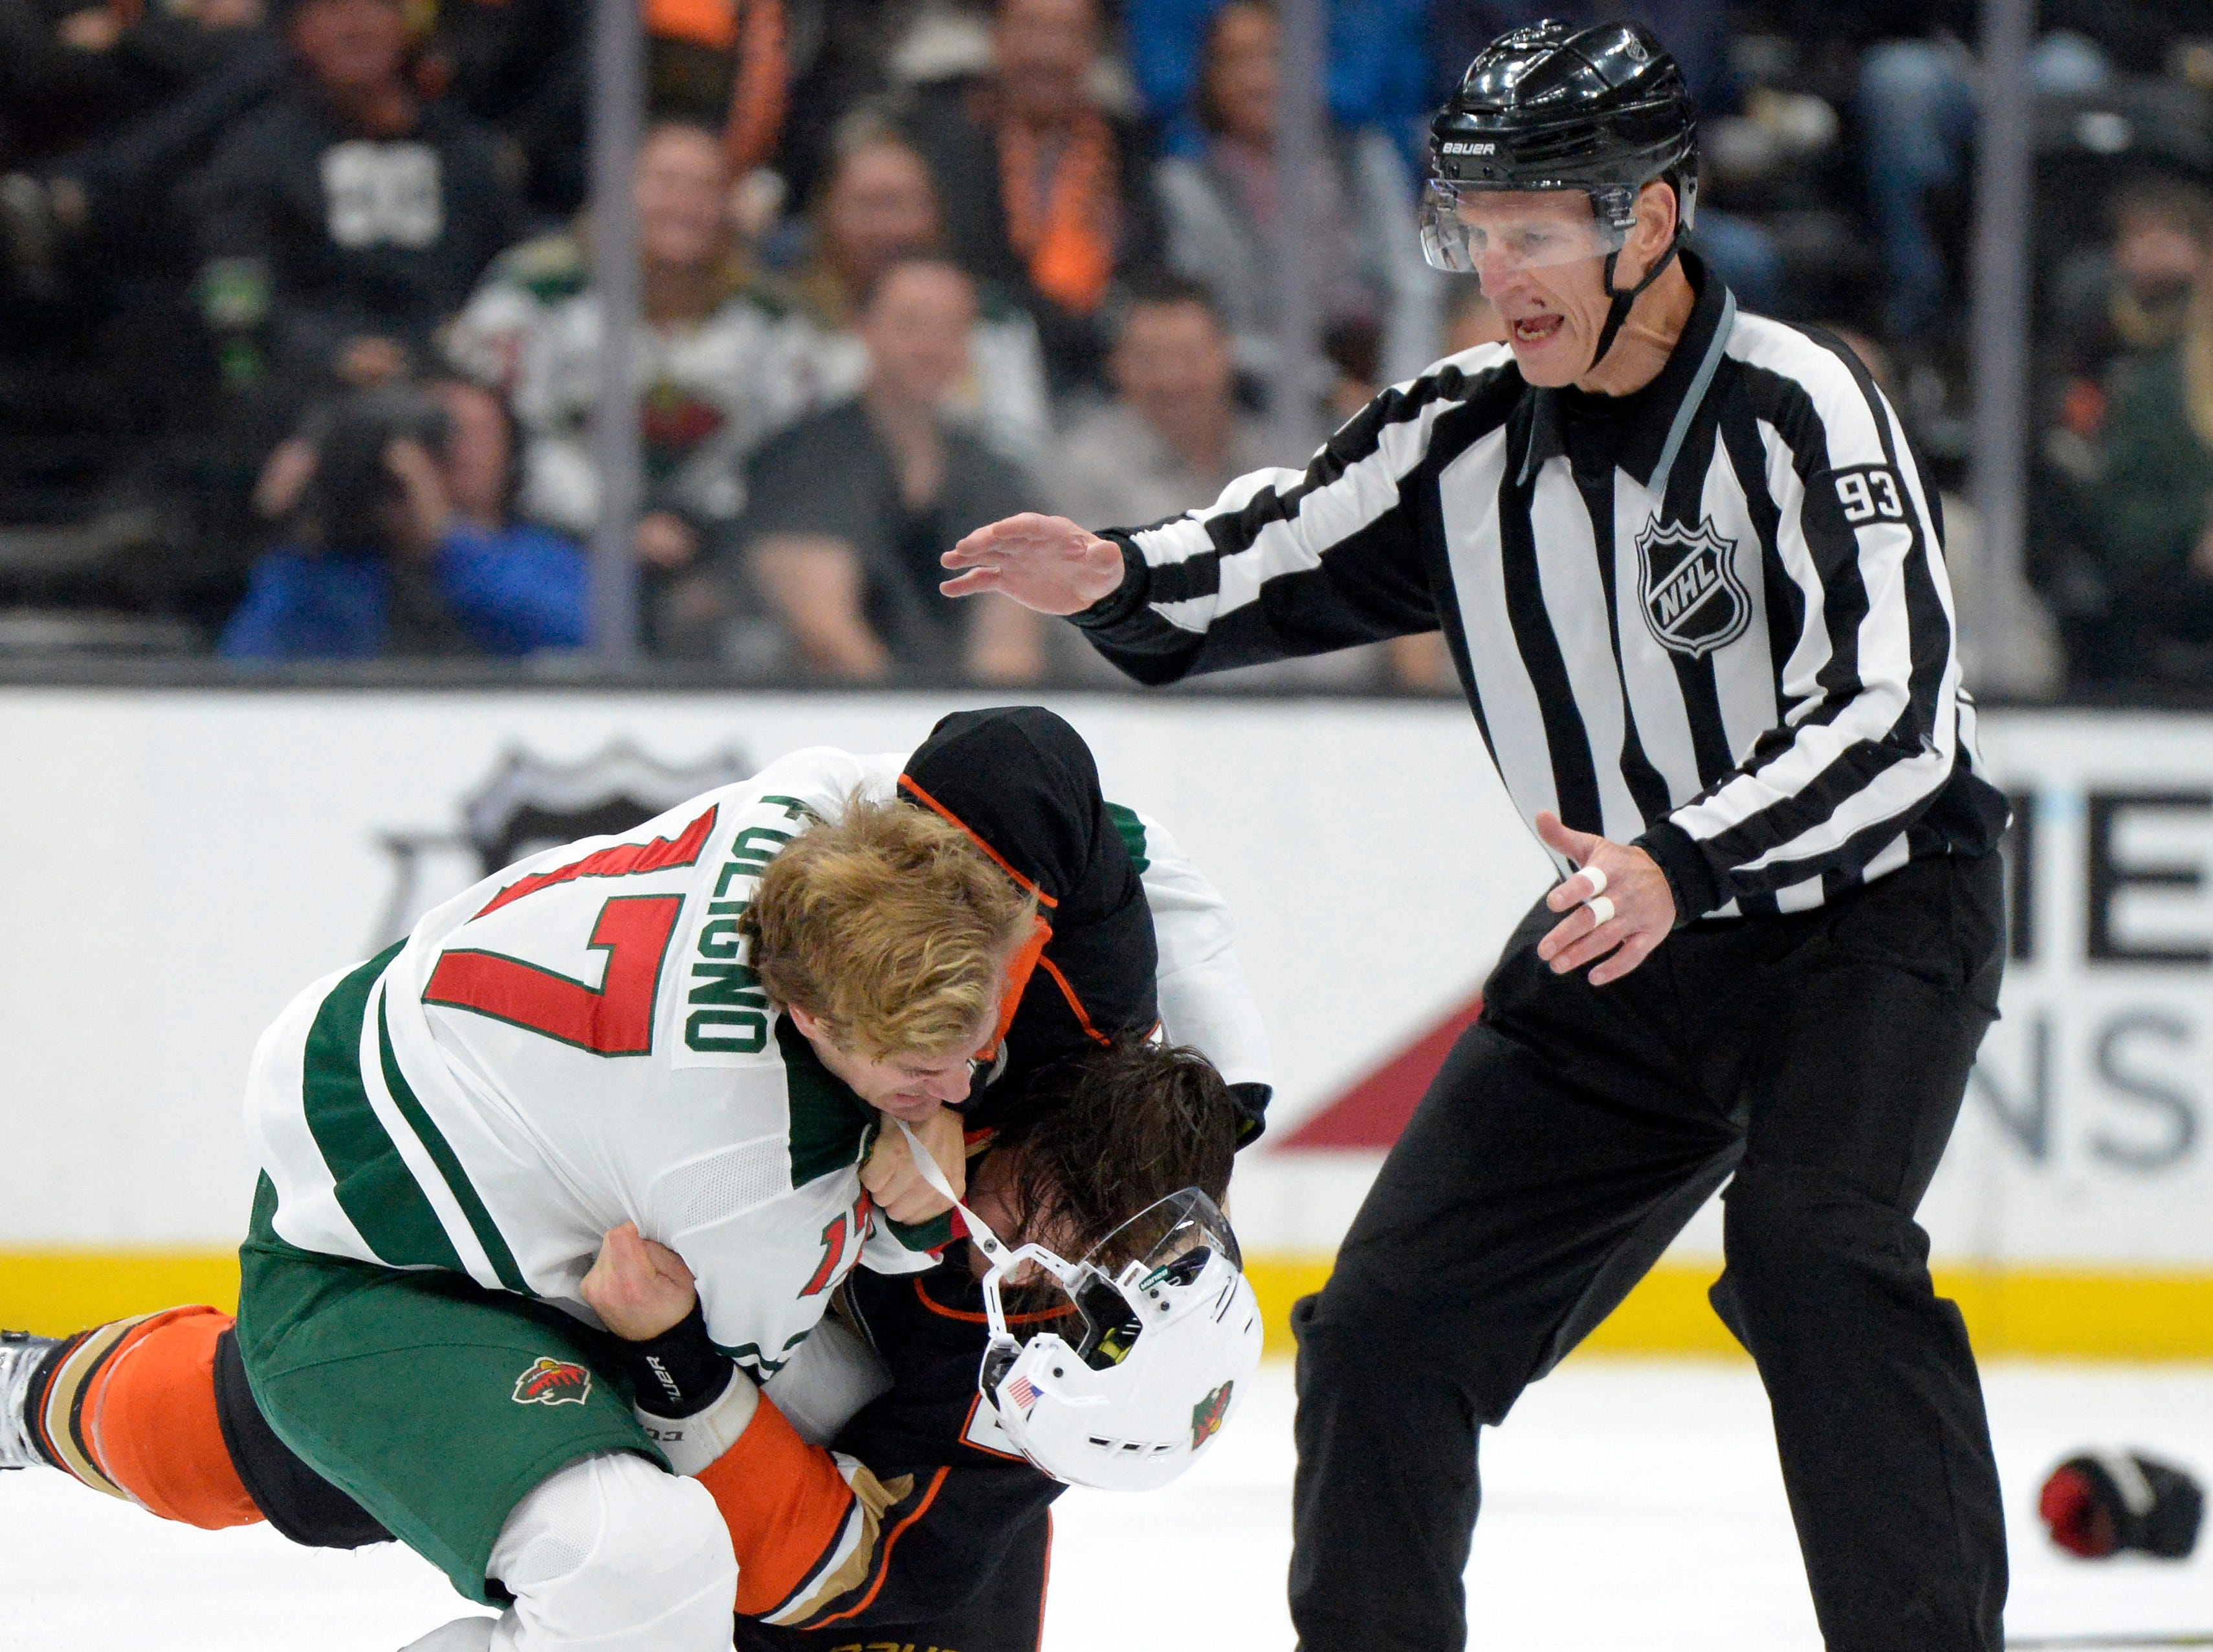 Nov. 9: Minnesota Wild's Marcus Foligno vs. Anaheim Ducks' Luke Schenn.